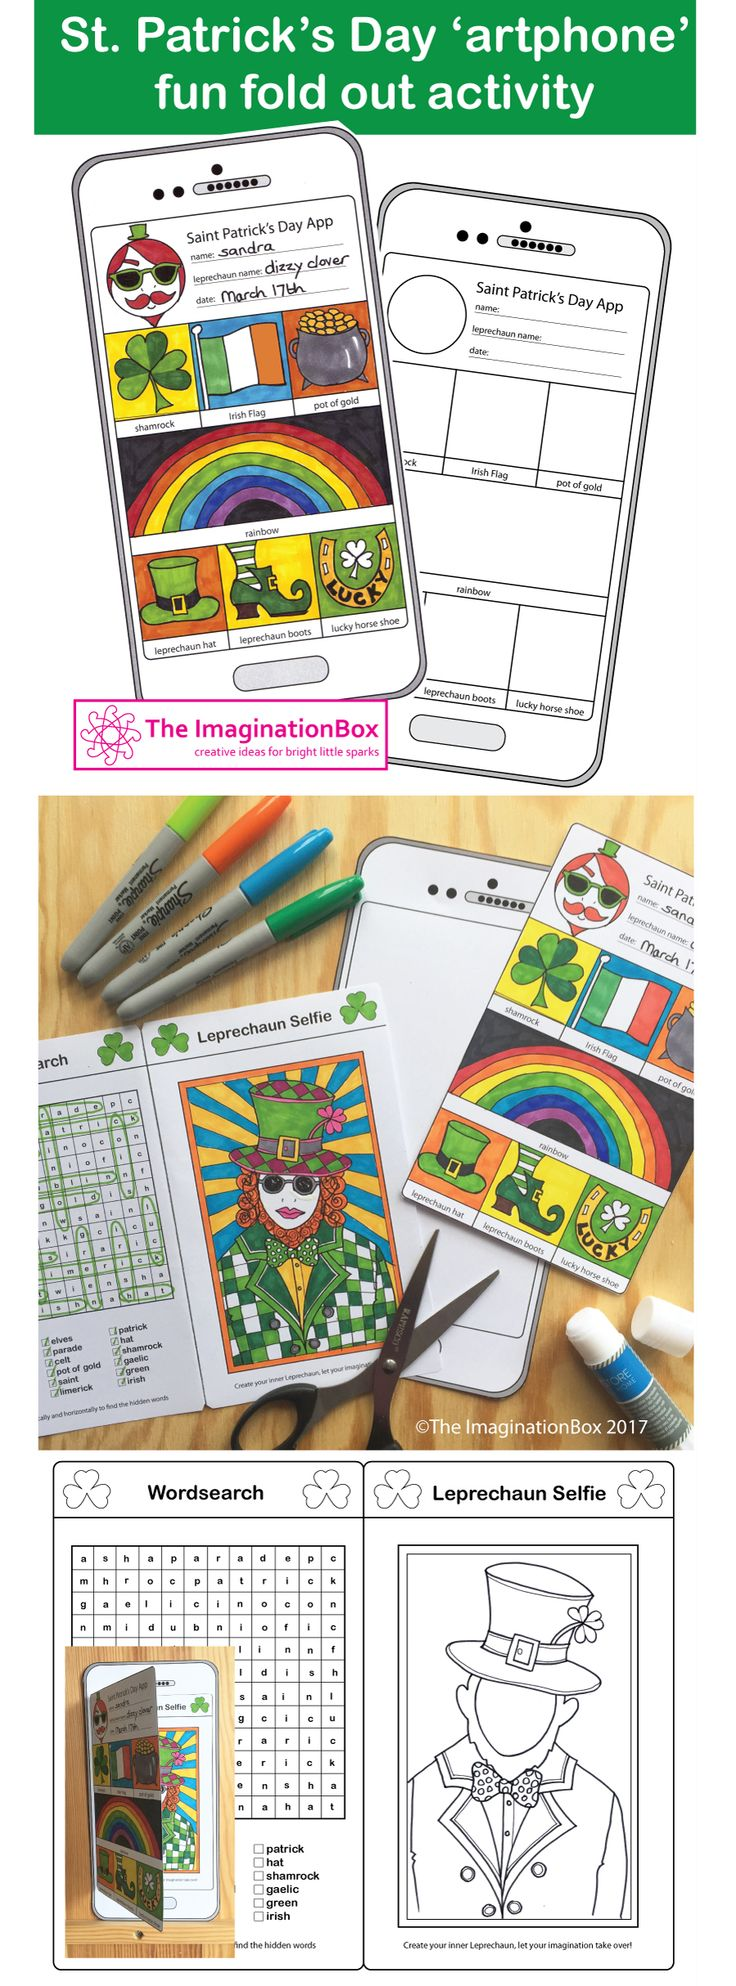 Celebrate St. Patrick's Day and engage children creatively with this fun, fold out Instagram style, 'tech' mobile phone/tablet art activity. This activity invites students to cut out and make their own fold out booklet style art-phone, and then to complete the image making on the front cover and the wordsearch and 'release your inner leprechaun' selfie activity on the inside pages. The finished 'artphone' measures 5 x 10 inches / 13 x 25.5cm.